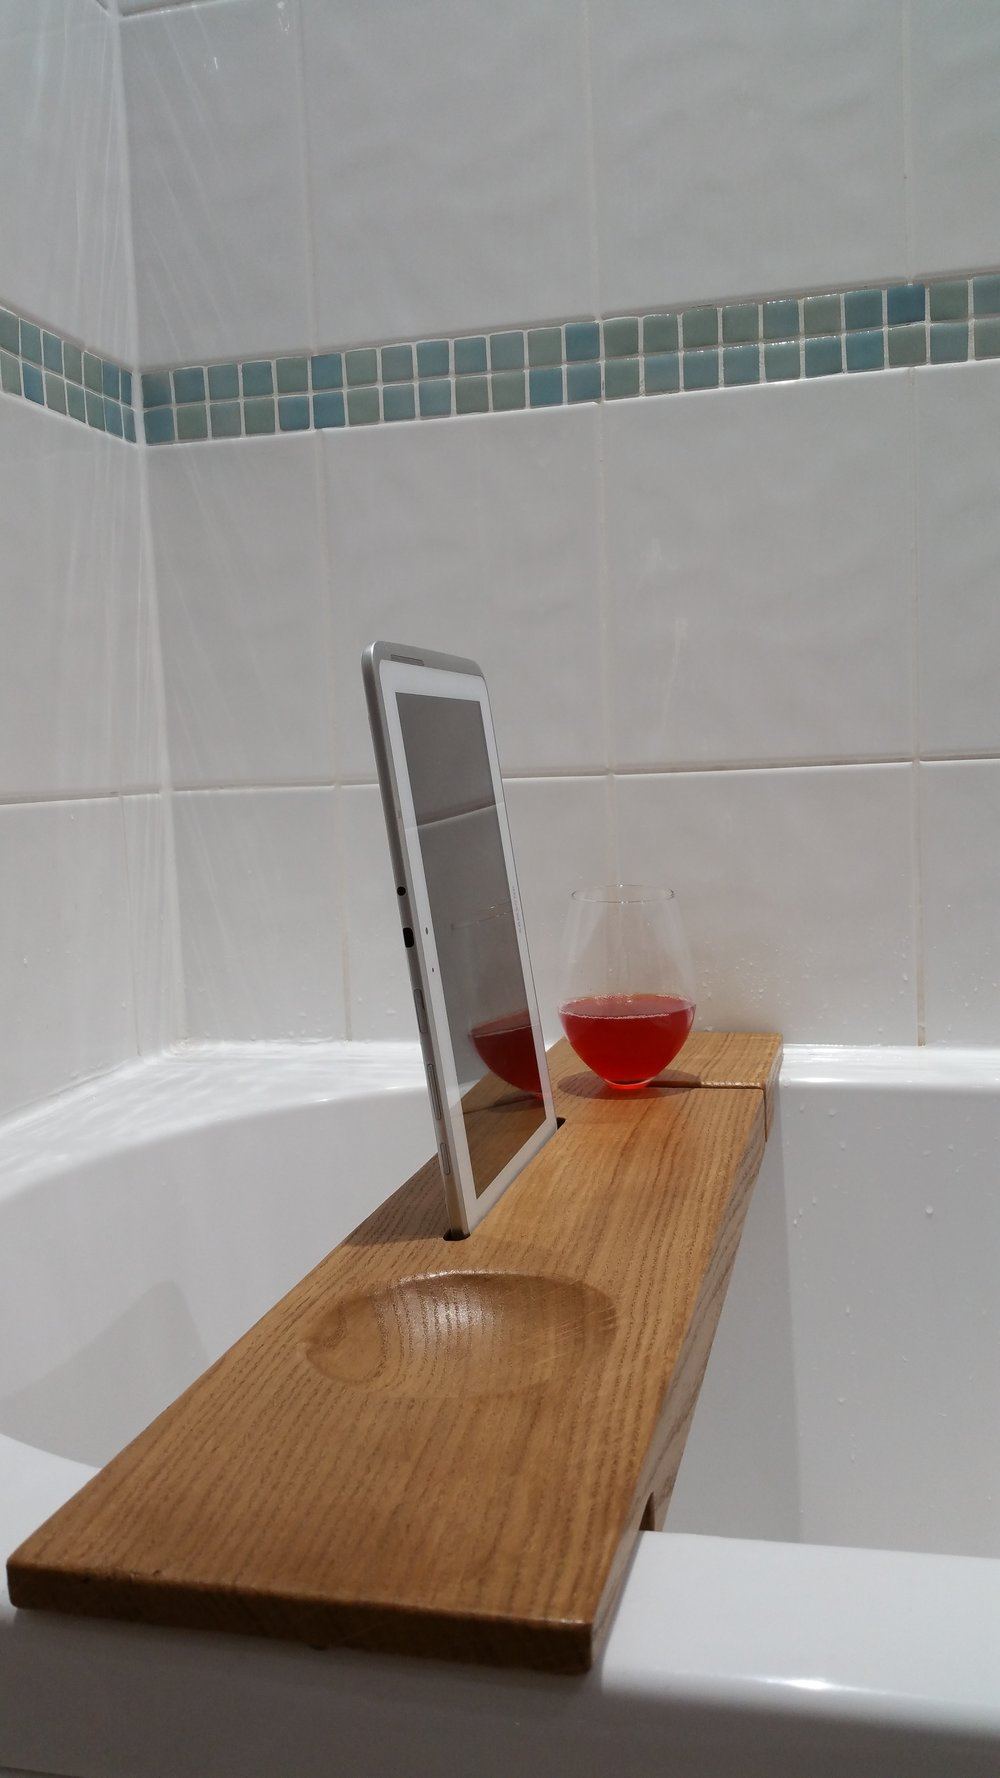 Oak Bath Caddy - Bath Board — Brad Quarless sculpture & fabricant de ...